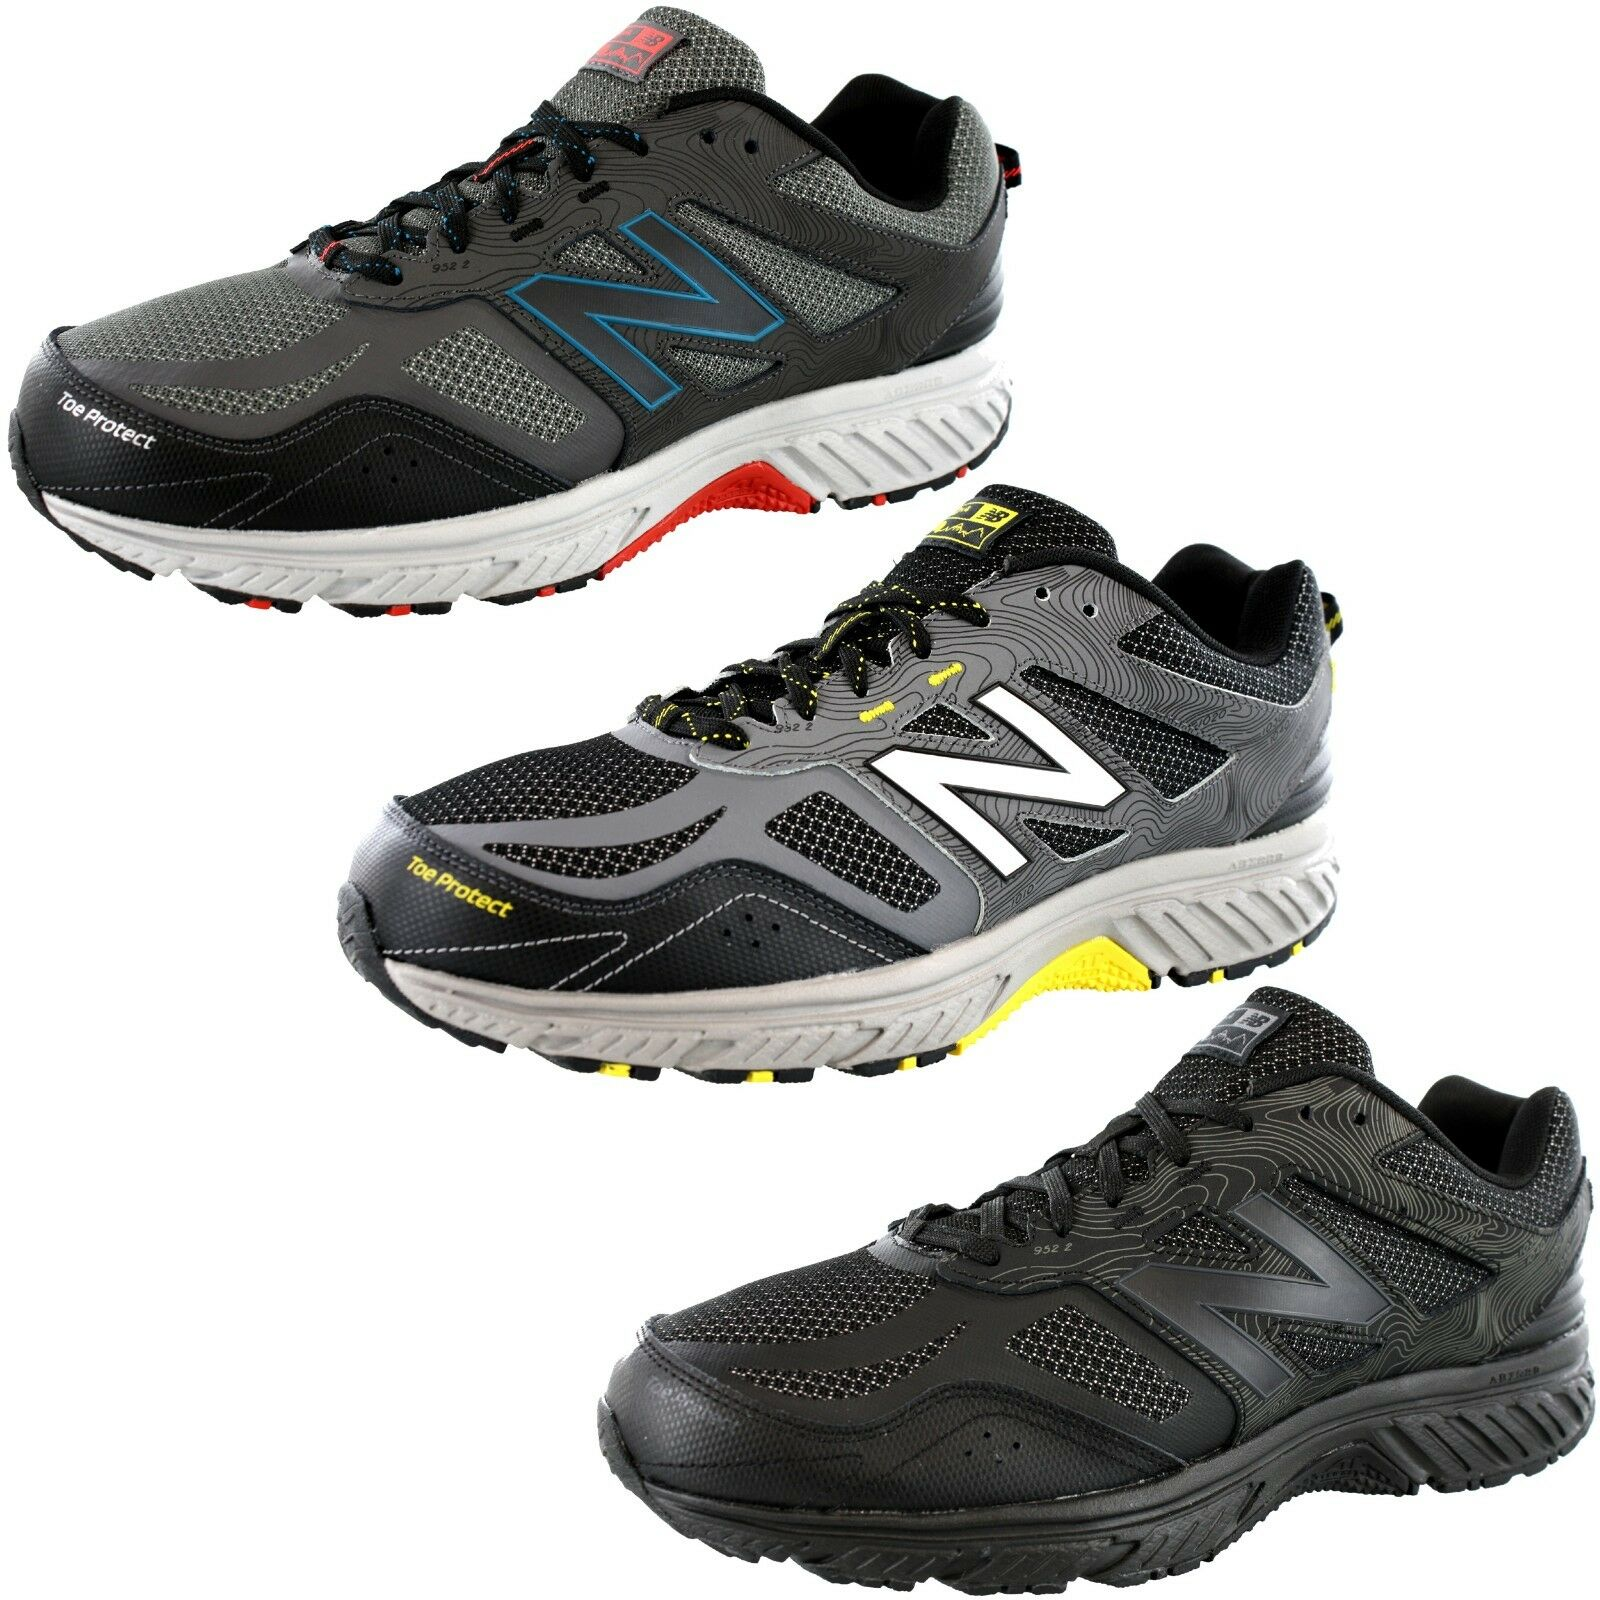 NEW BALANCE MENS MT510 4E WIDE WIDTH CUSHIONING TRAIL RUNNING schuhe